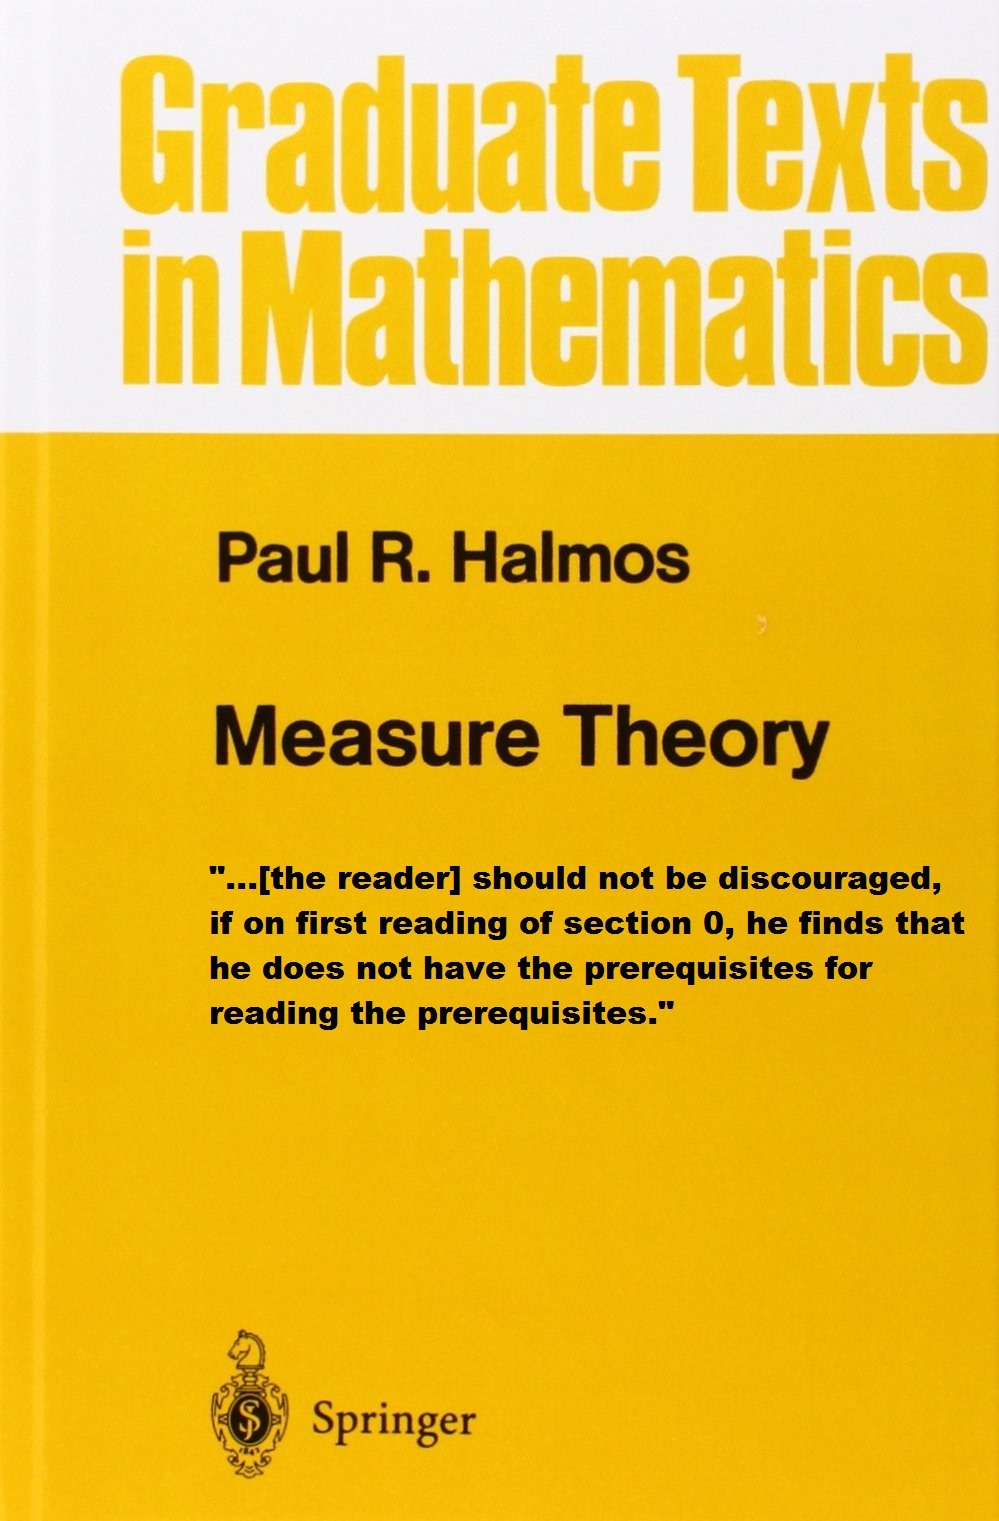 Paul Halmos on Prerequisites